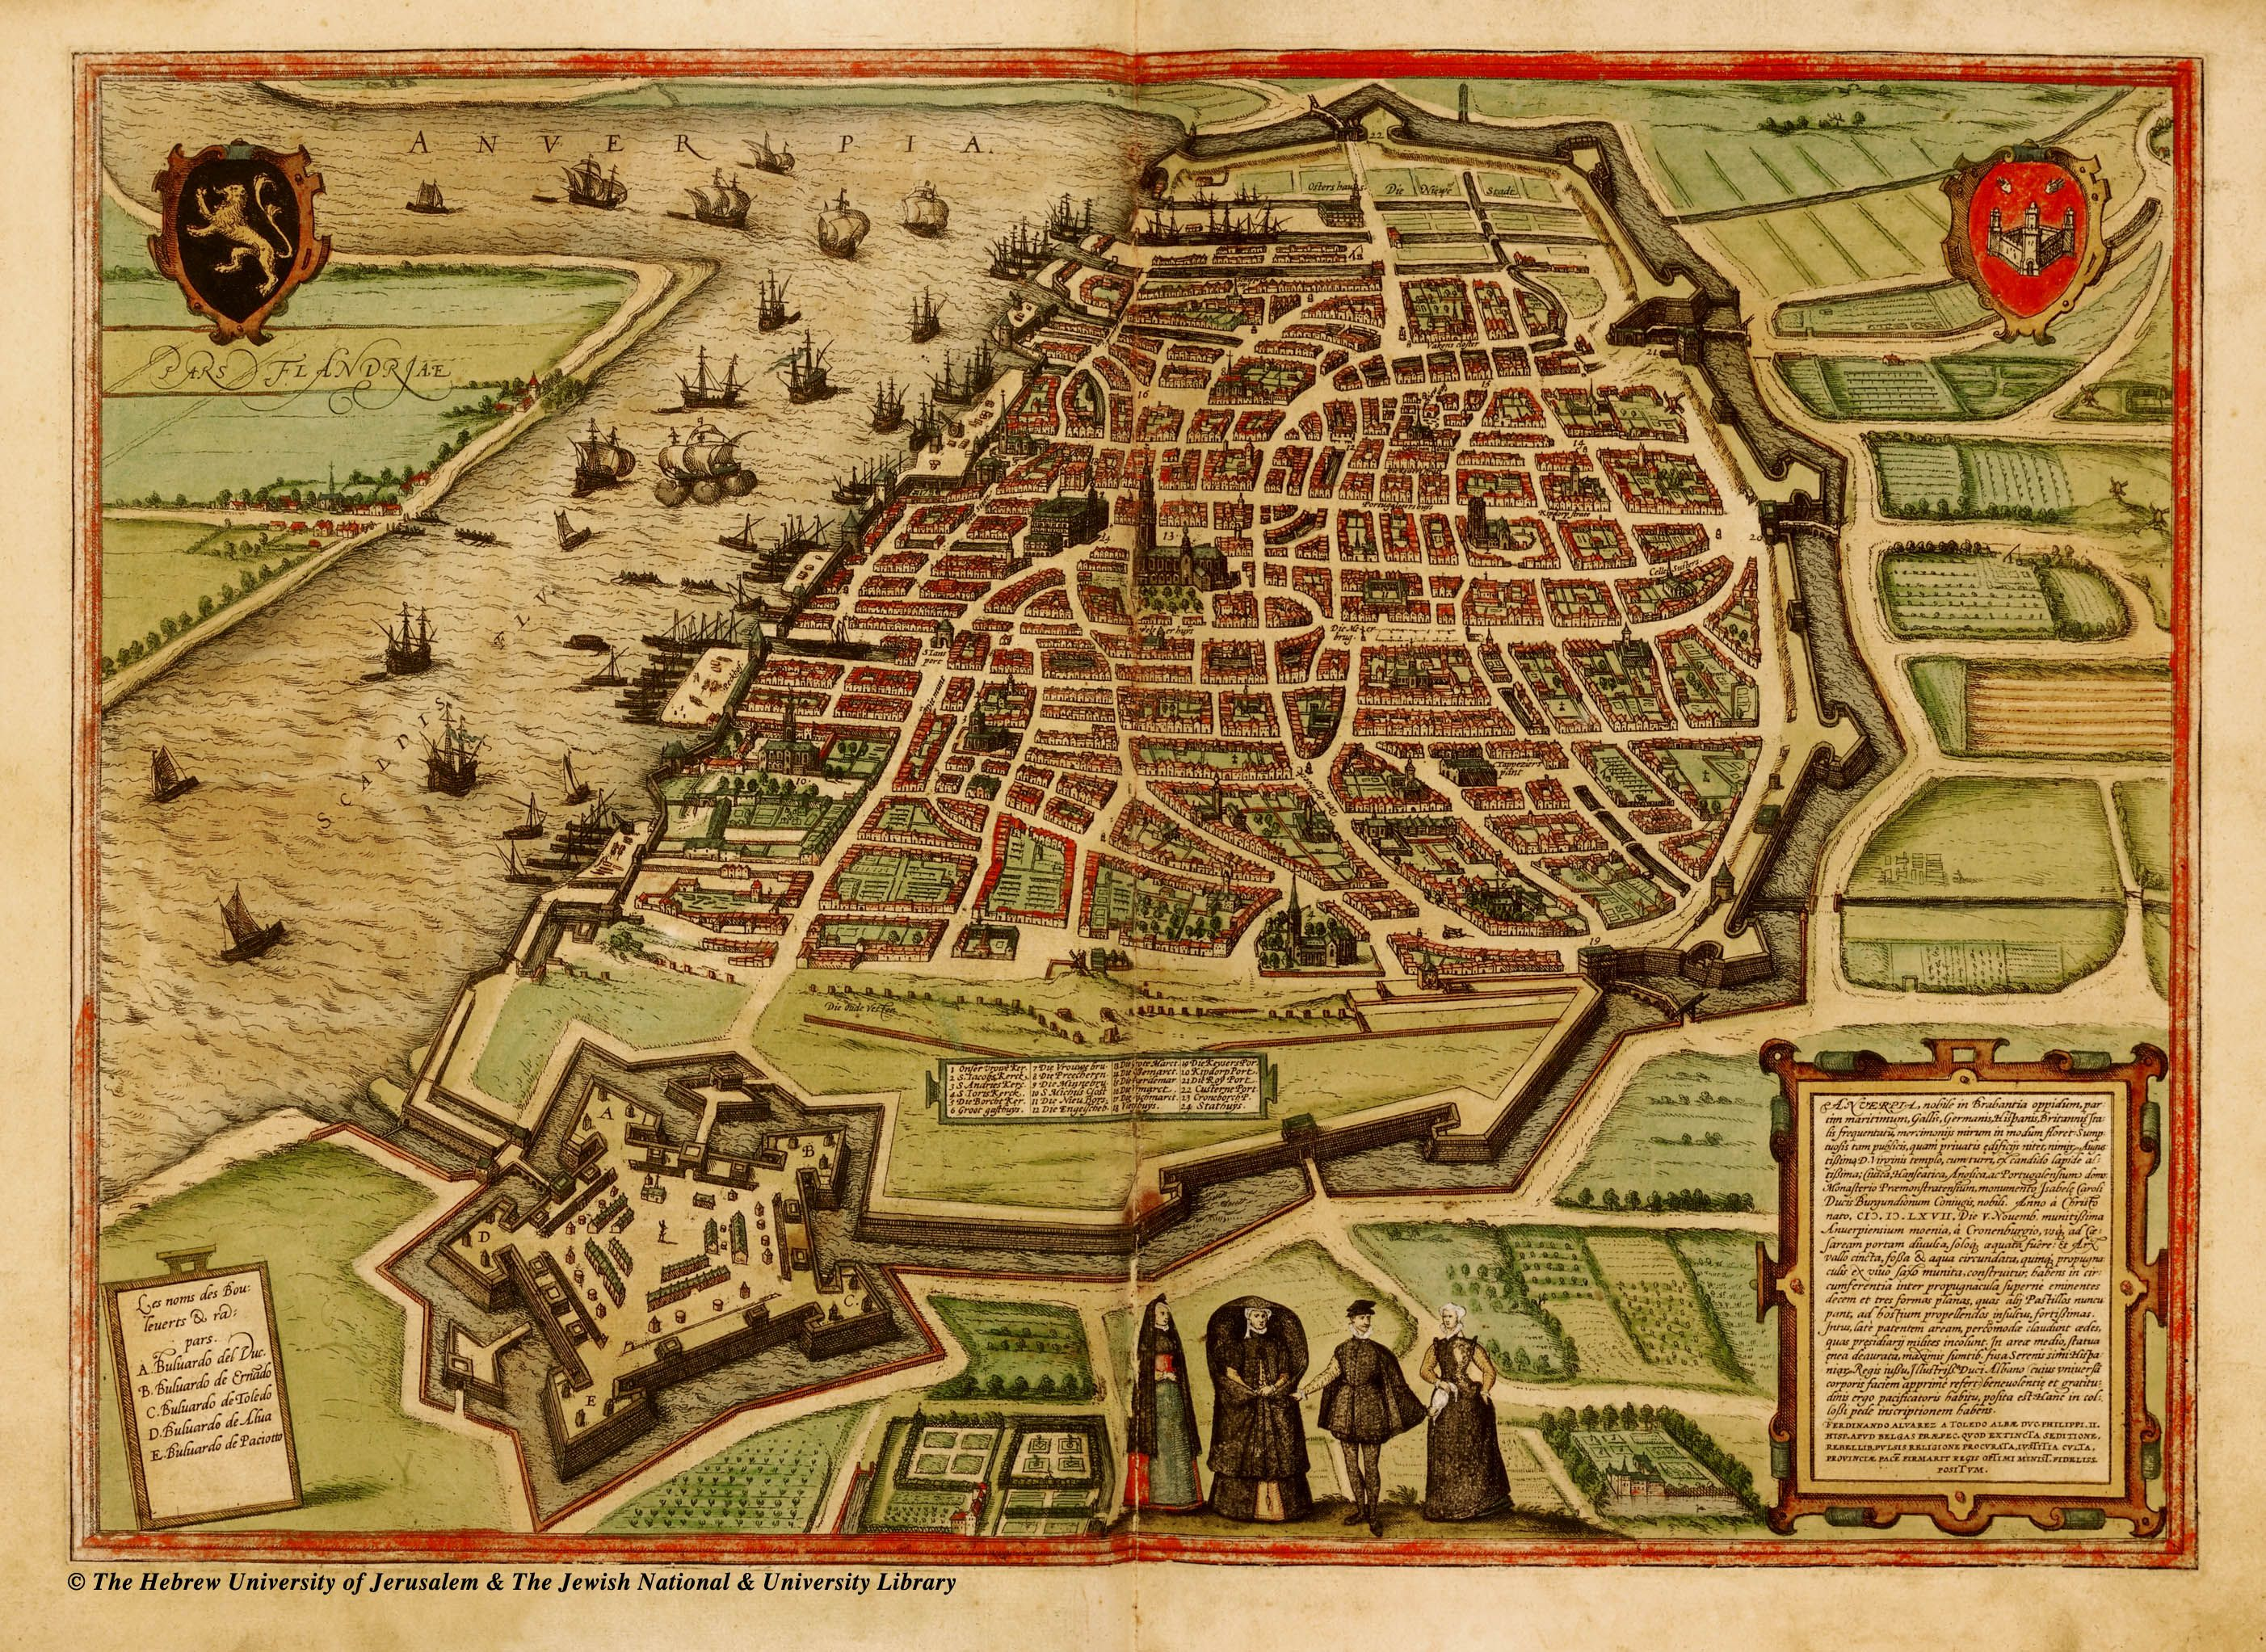 Antwerp in the Sixteenth Century Maps Pinterest Antwerp